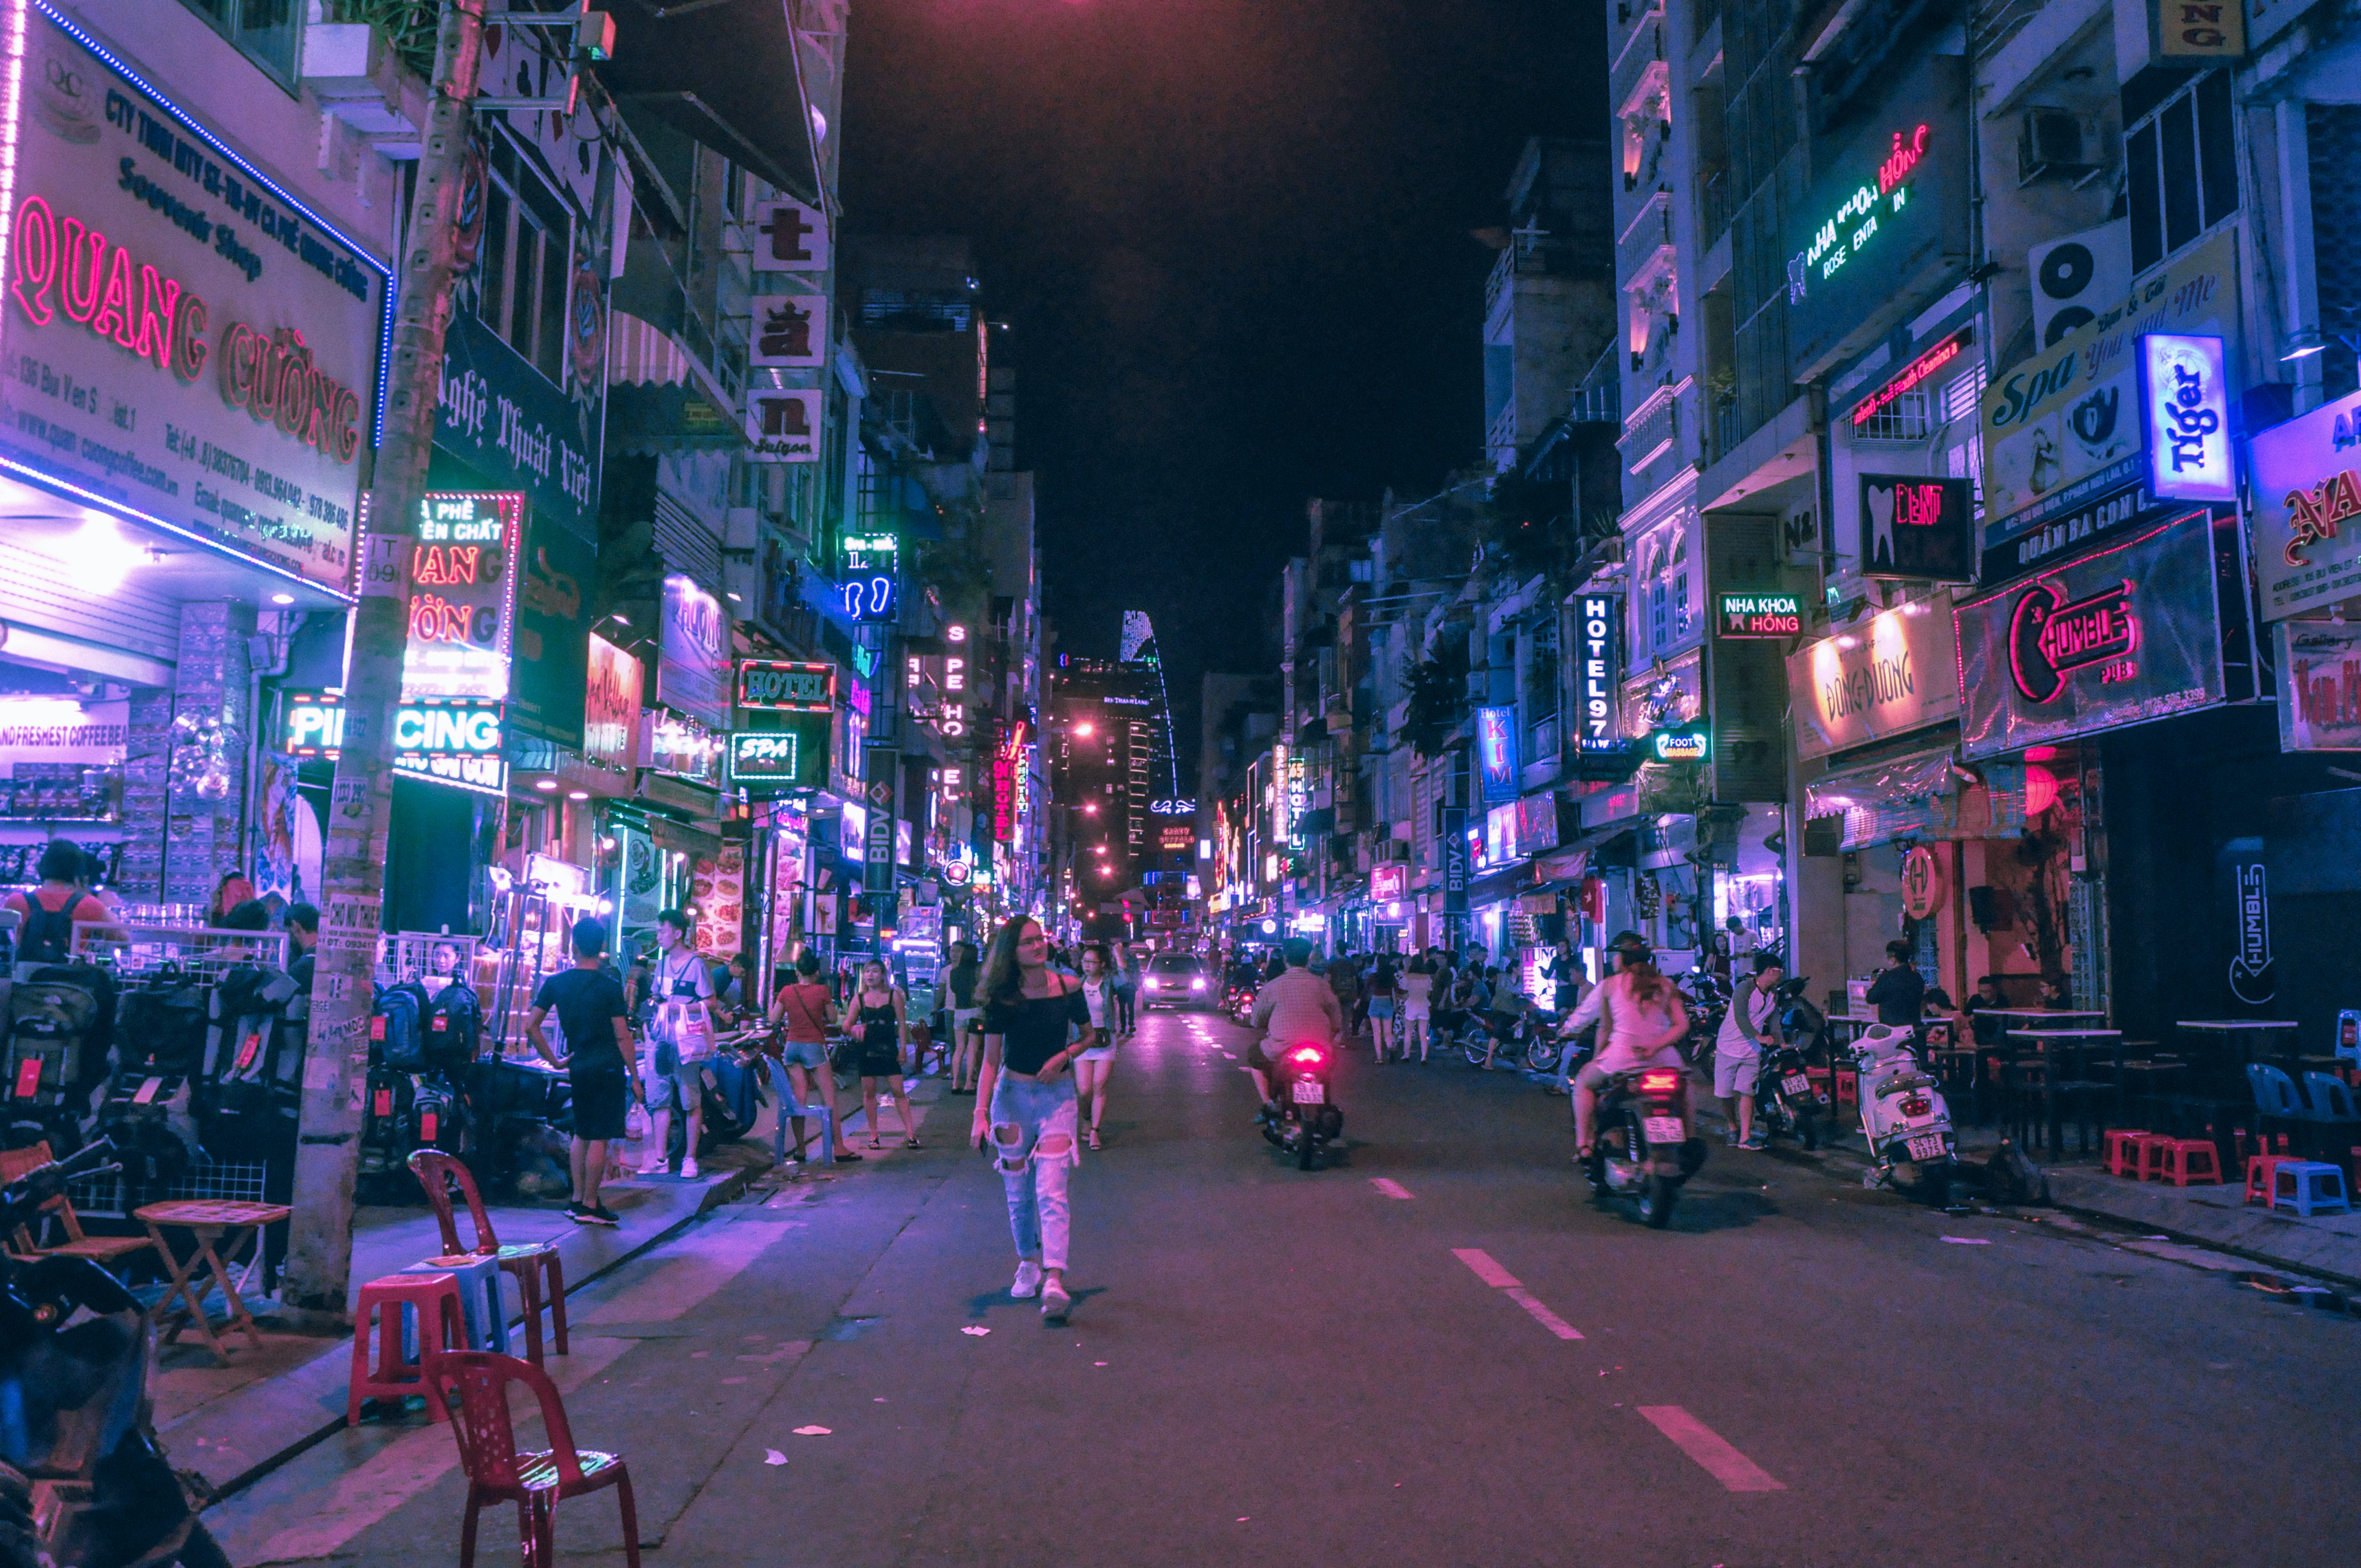 several people in street during nighttime